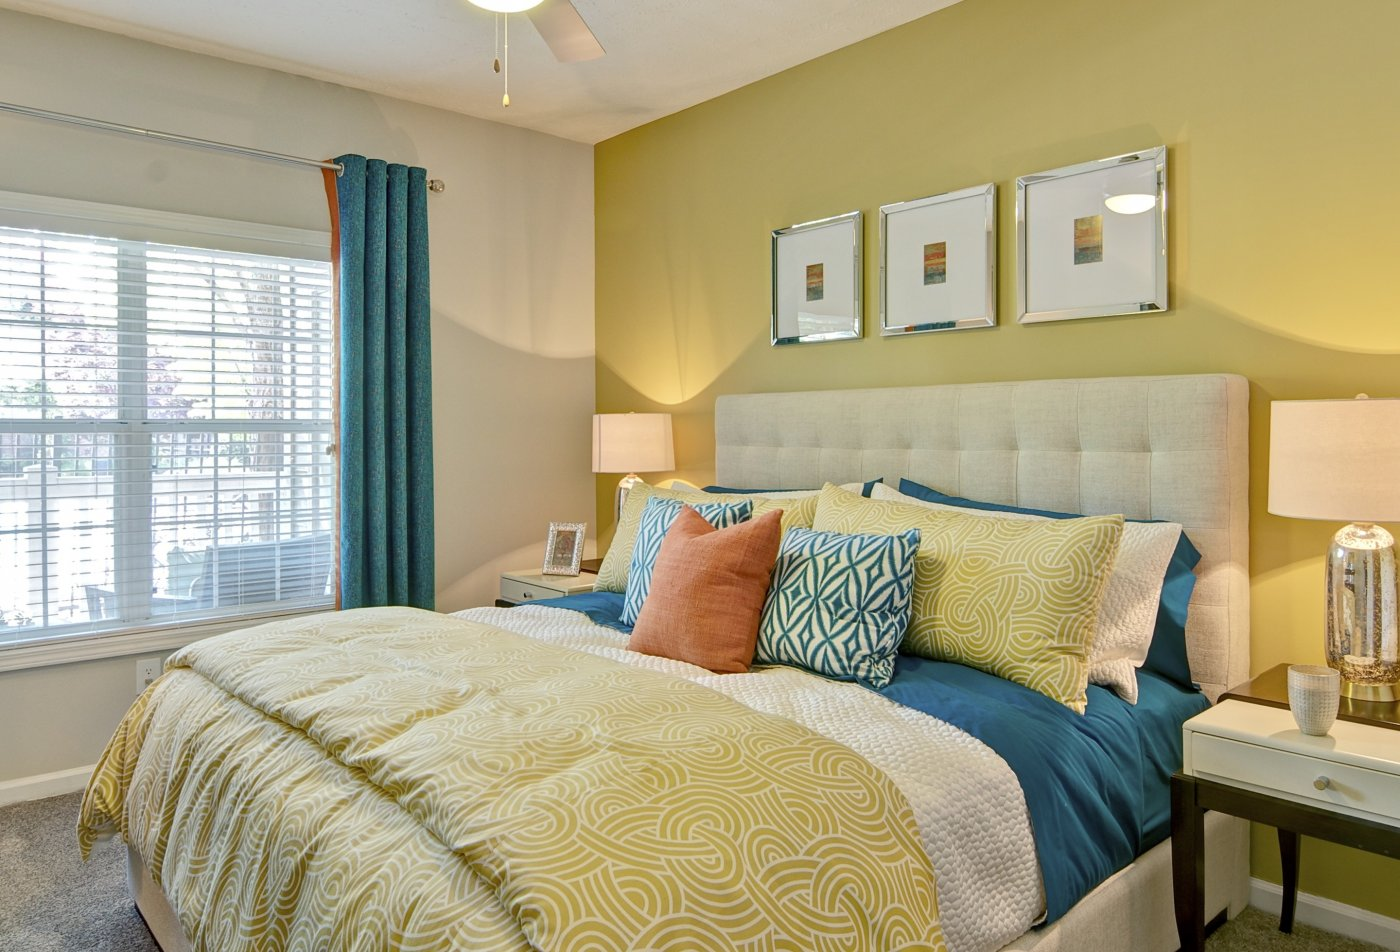 Spacious Master Bedroom | Apartments Homes for rent in Atlanta, GA | Aspire Perimeter Apartments